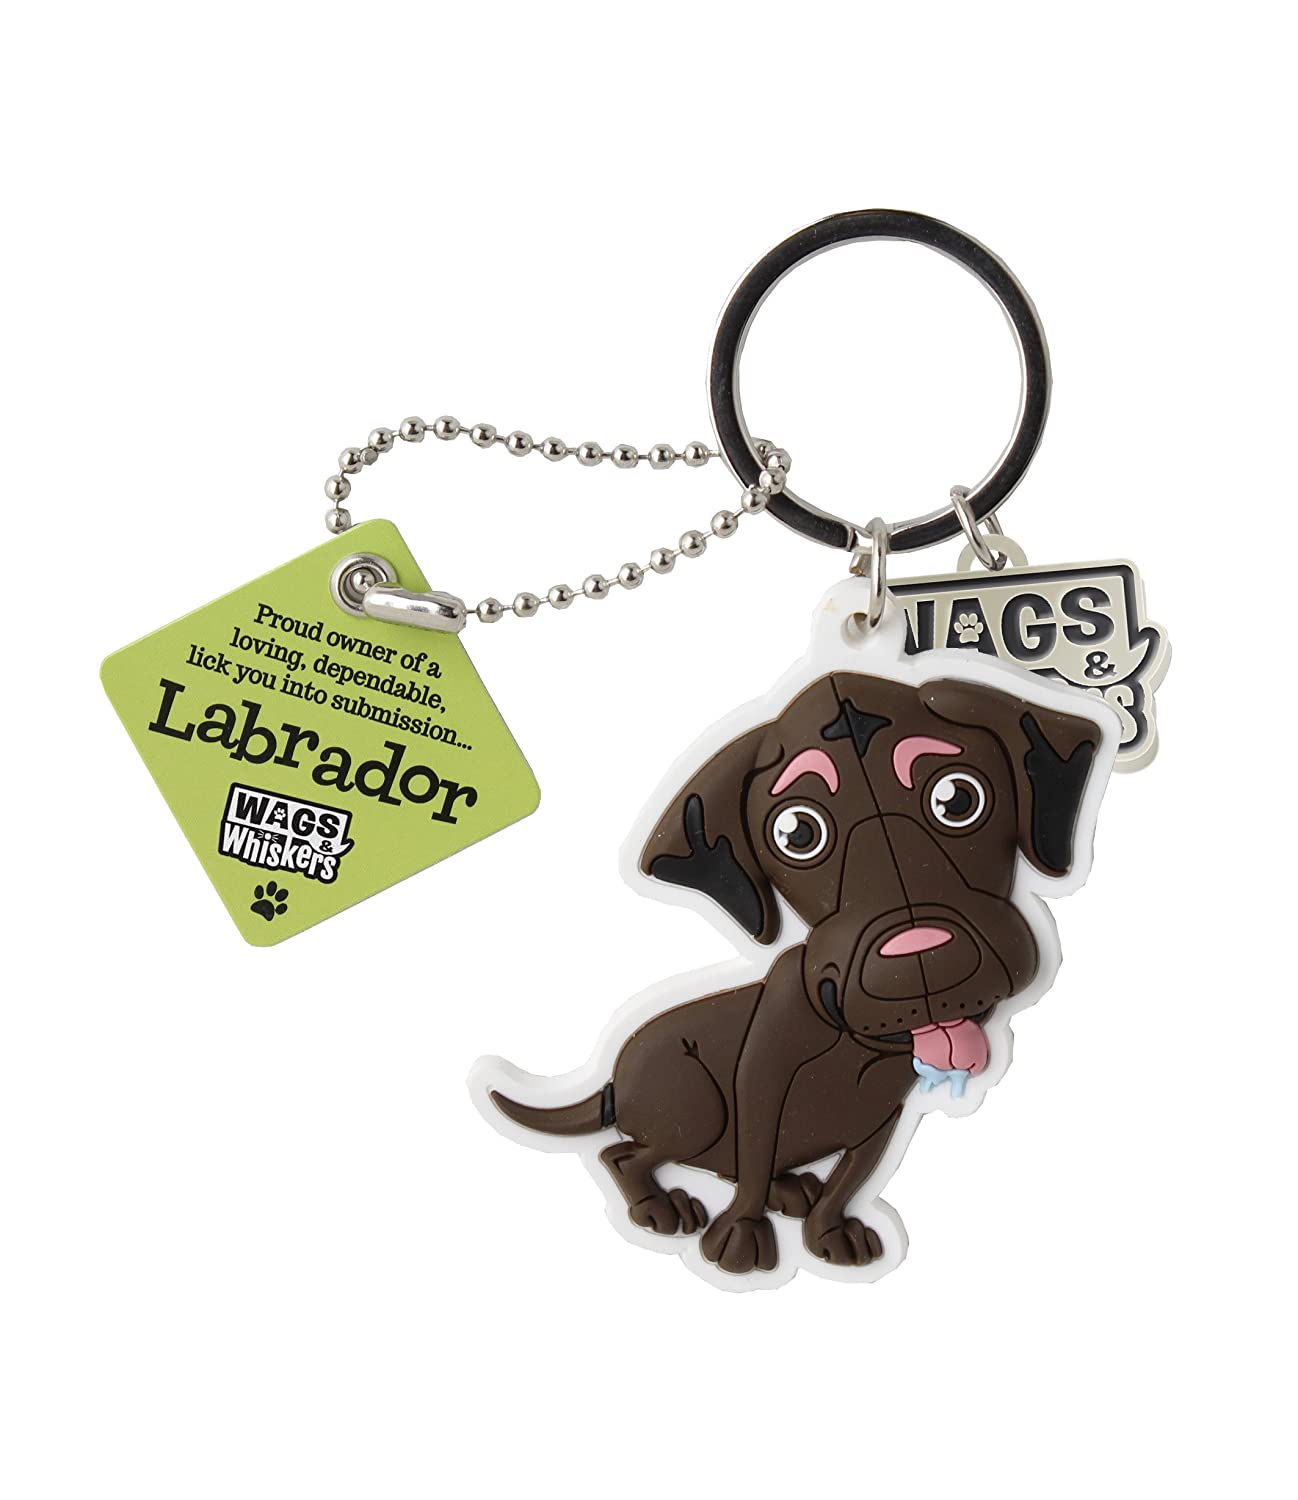 """Cream /"""" by Paper Island Wags /& Whiskers Dog Key Ring /""""Labrador"""